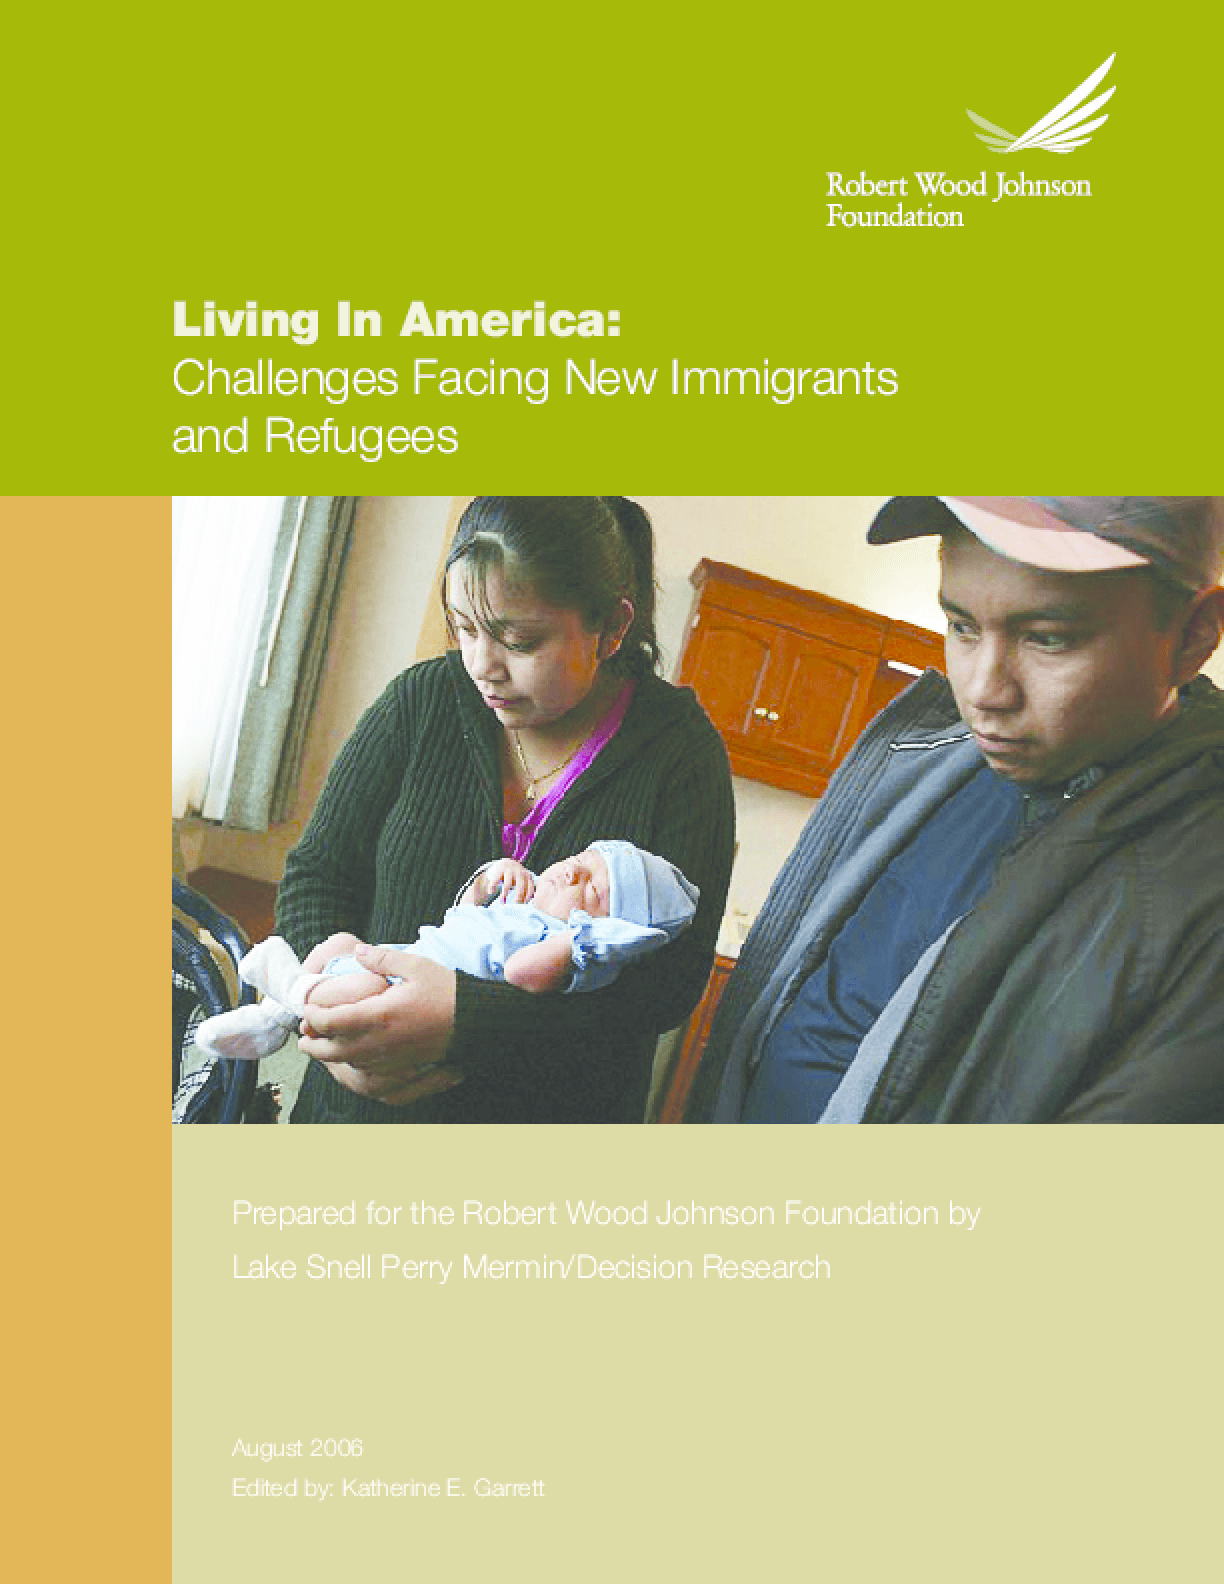 Living in America: Challenges Facing New Immigrants and Refugees